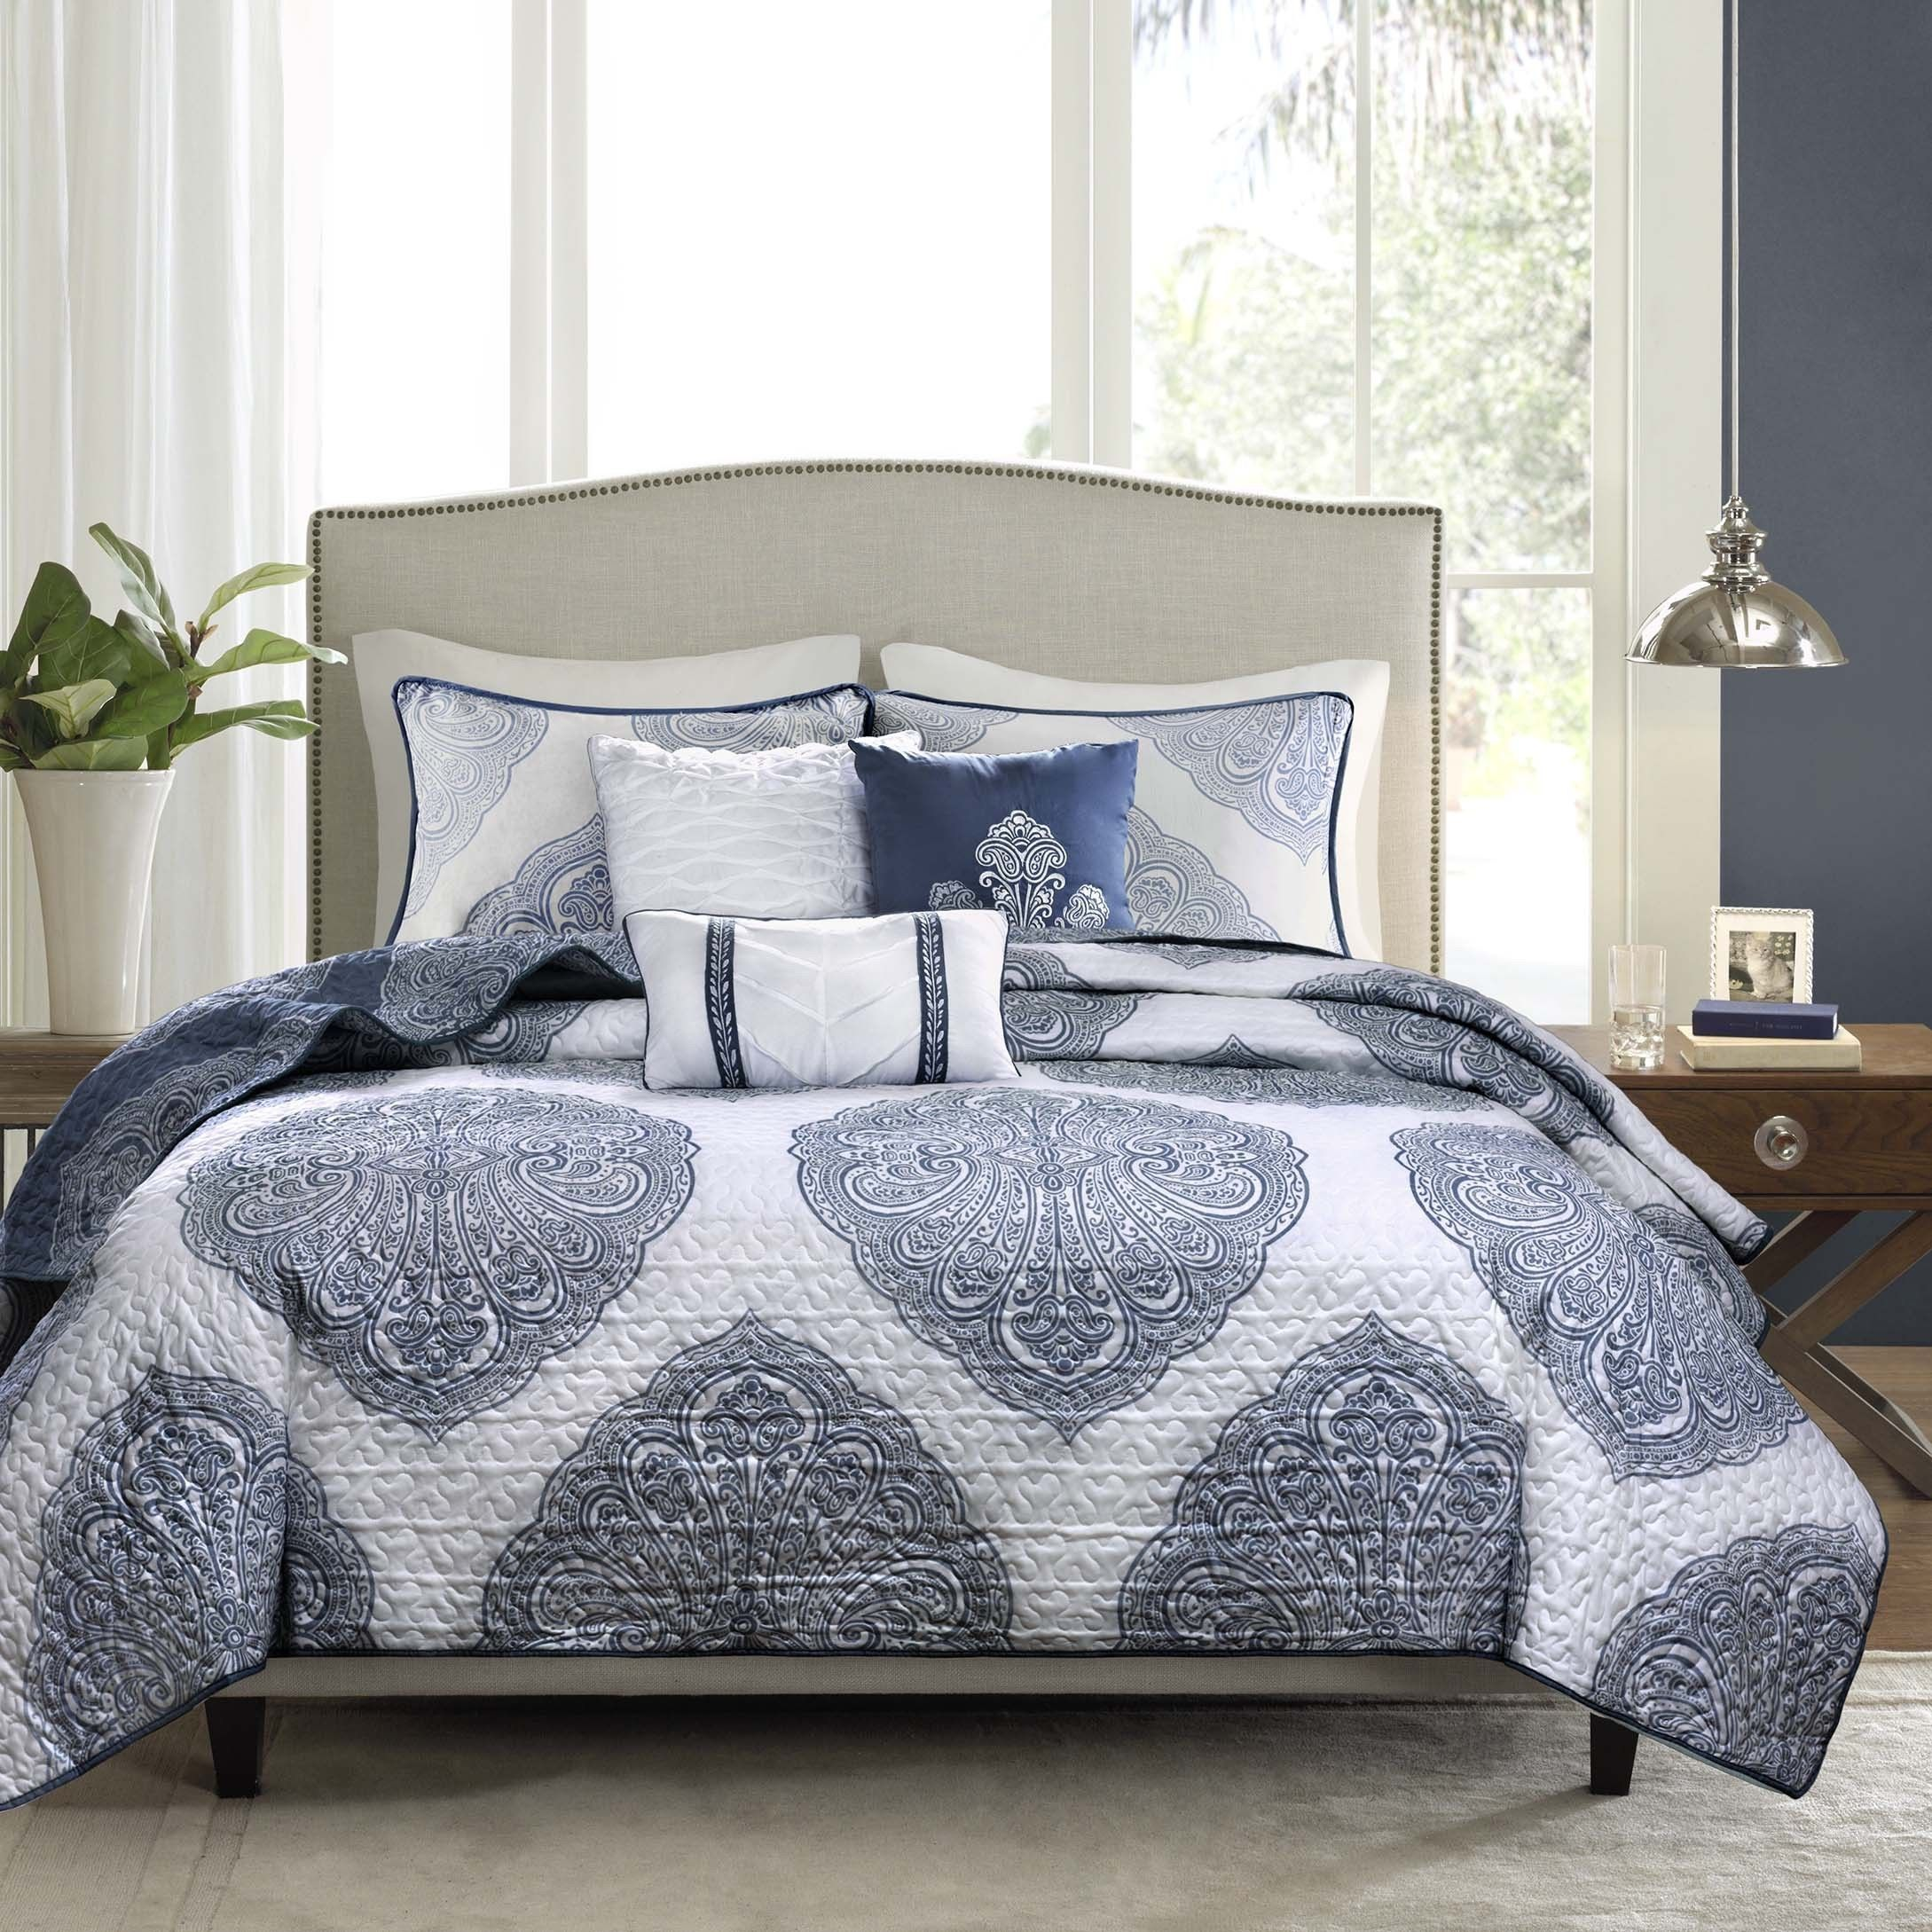 Overstock Com Online Shopping Bedding Furniture Electronics Jewelry Clothing More Coverlet Set Quilted Coverlet Quilt Sets Bedding